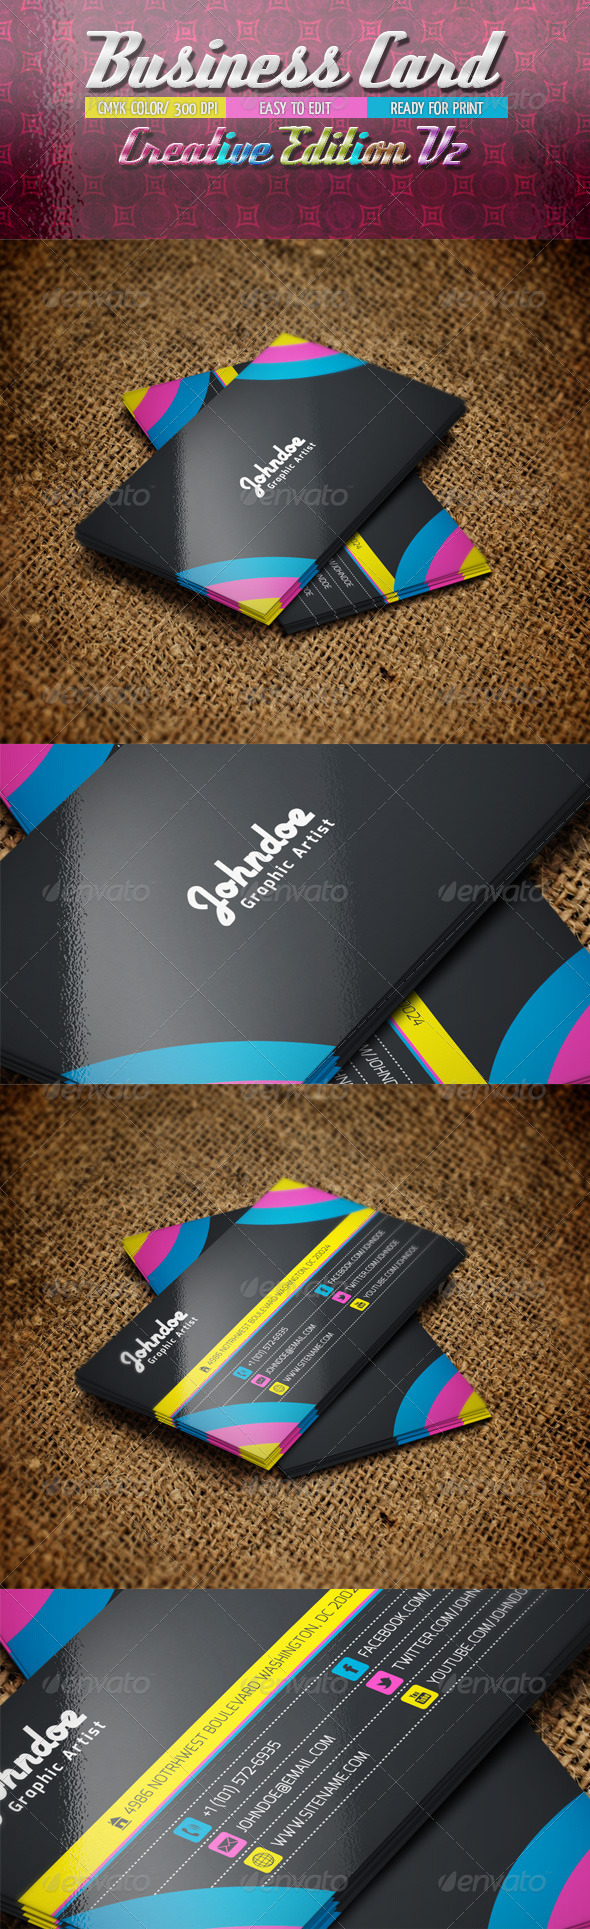 Business Card Creative Edition V2 - Business Cards Print Templates